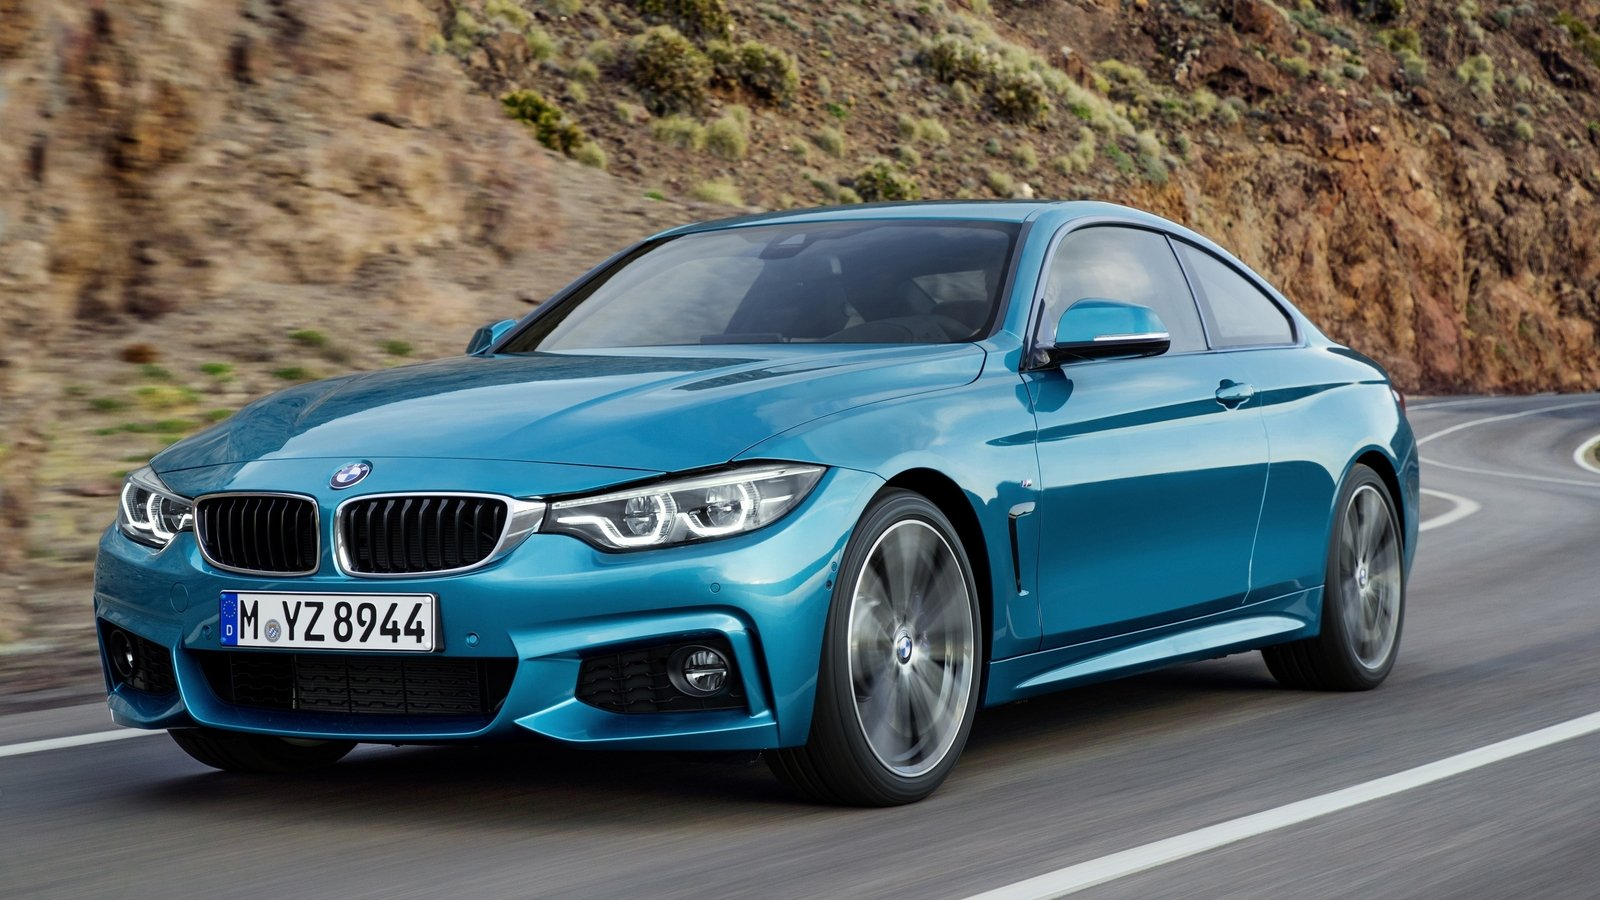 2018 BMW 4 Series Coupe Review - Top Speed